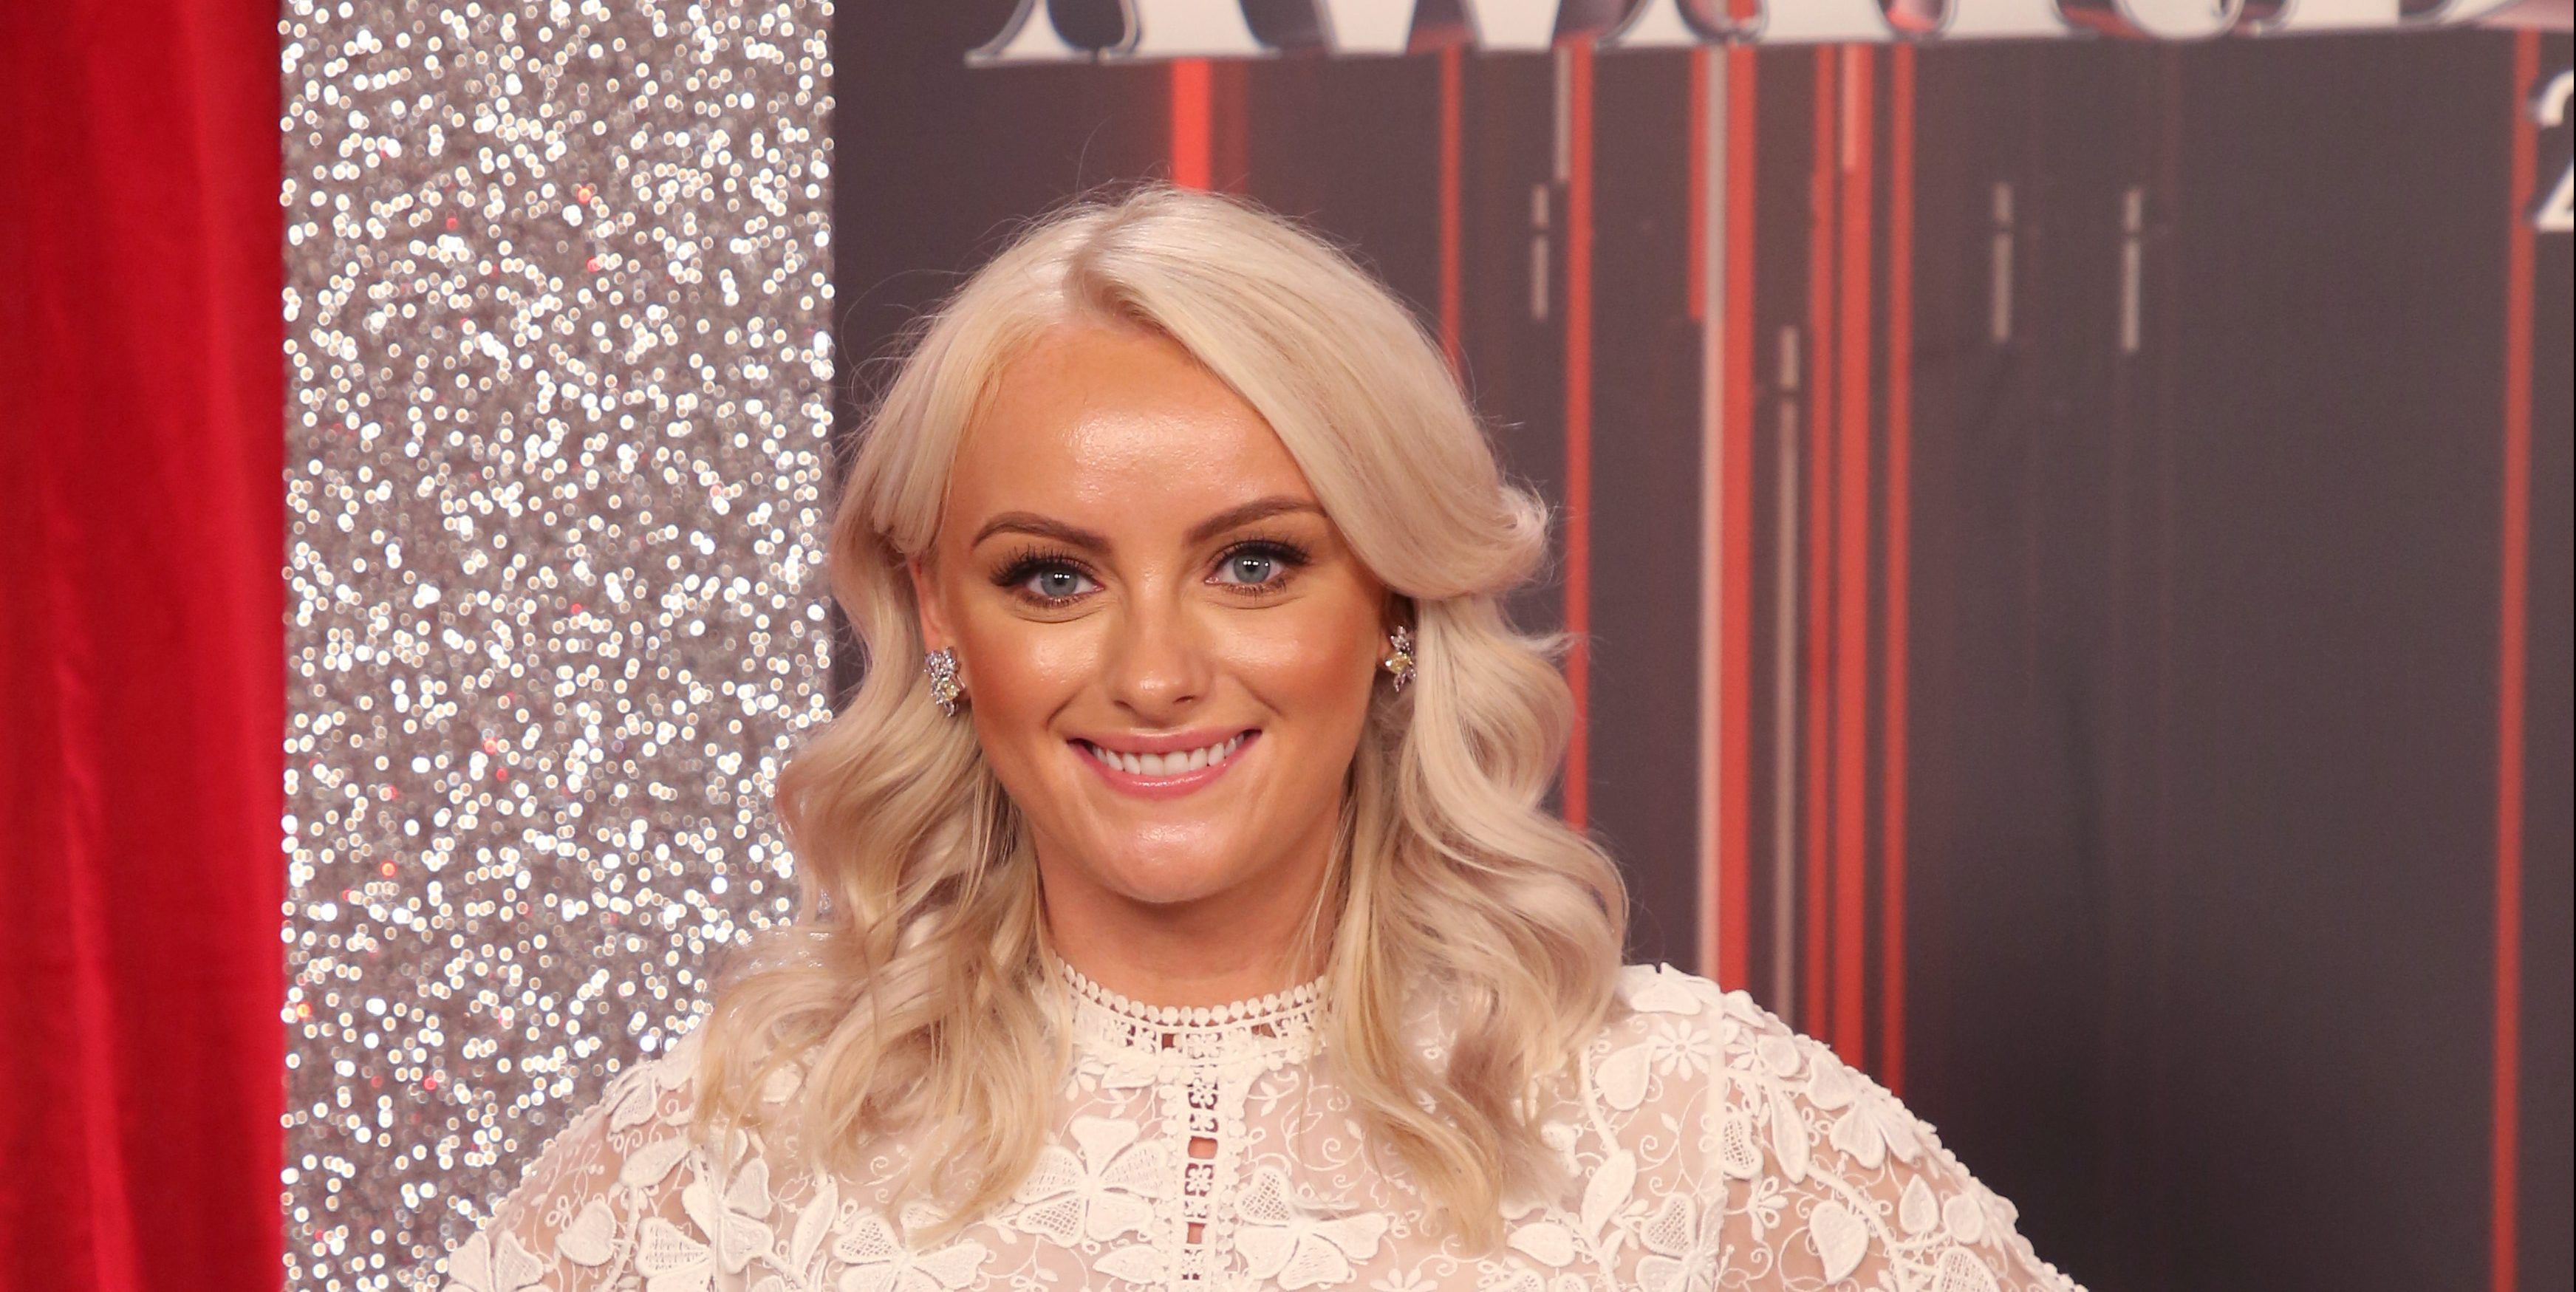 Katie McGlynn shares photos with Coronation Street co-stars on night out